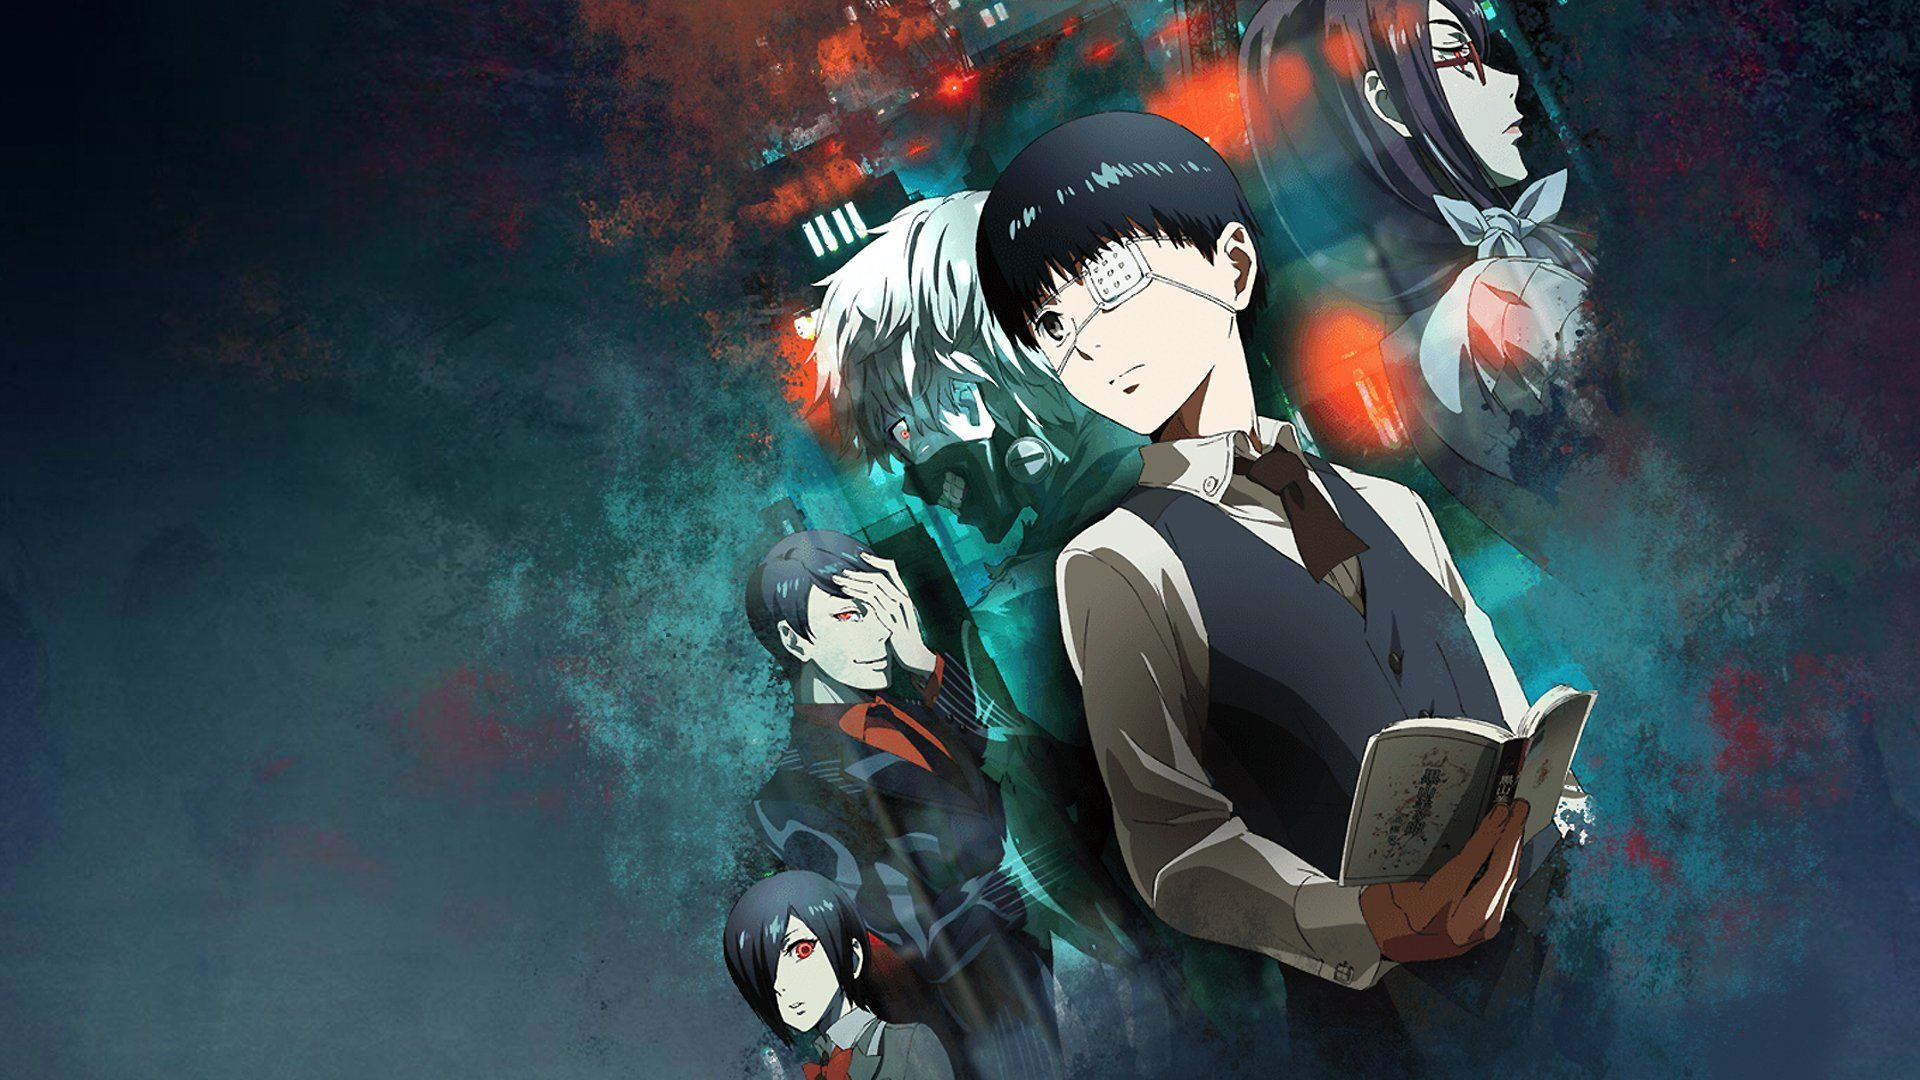 tokyo ghoul aesthetic ps4 wallpapers